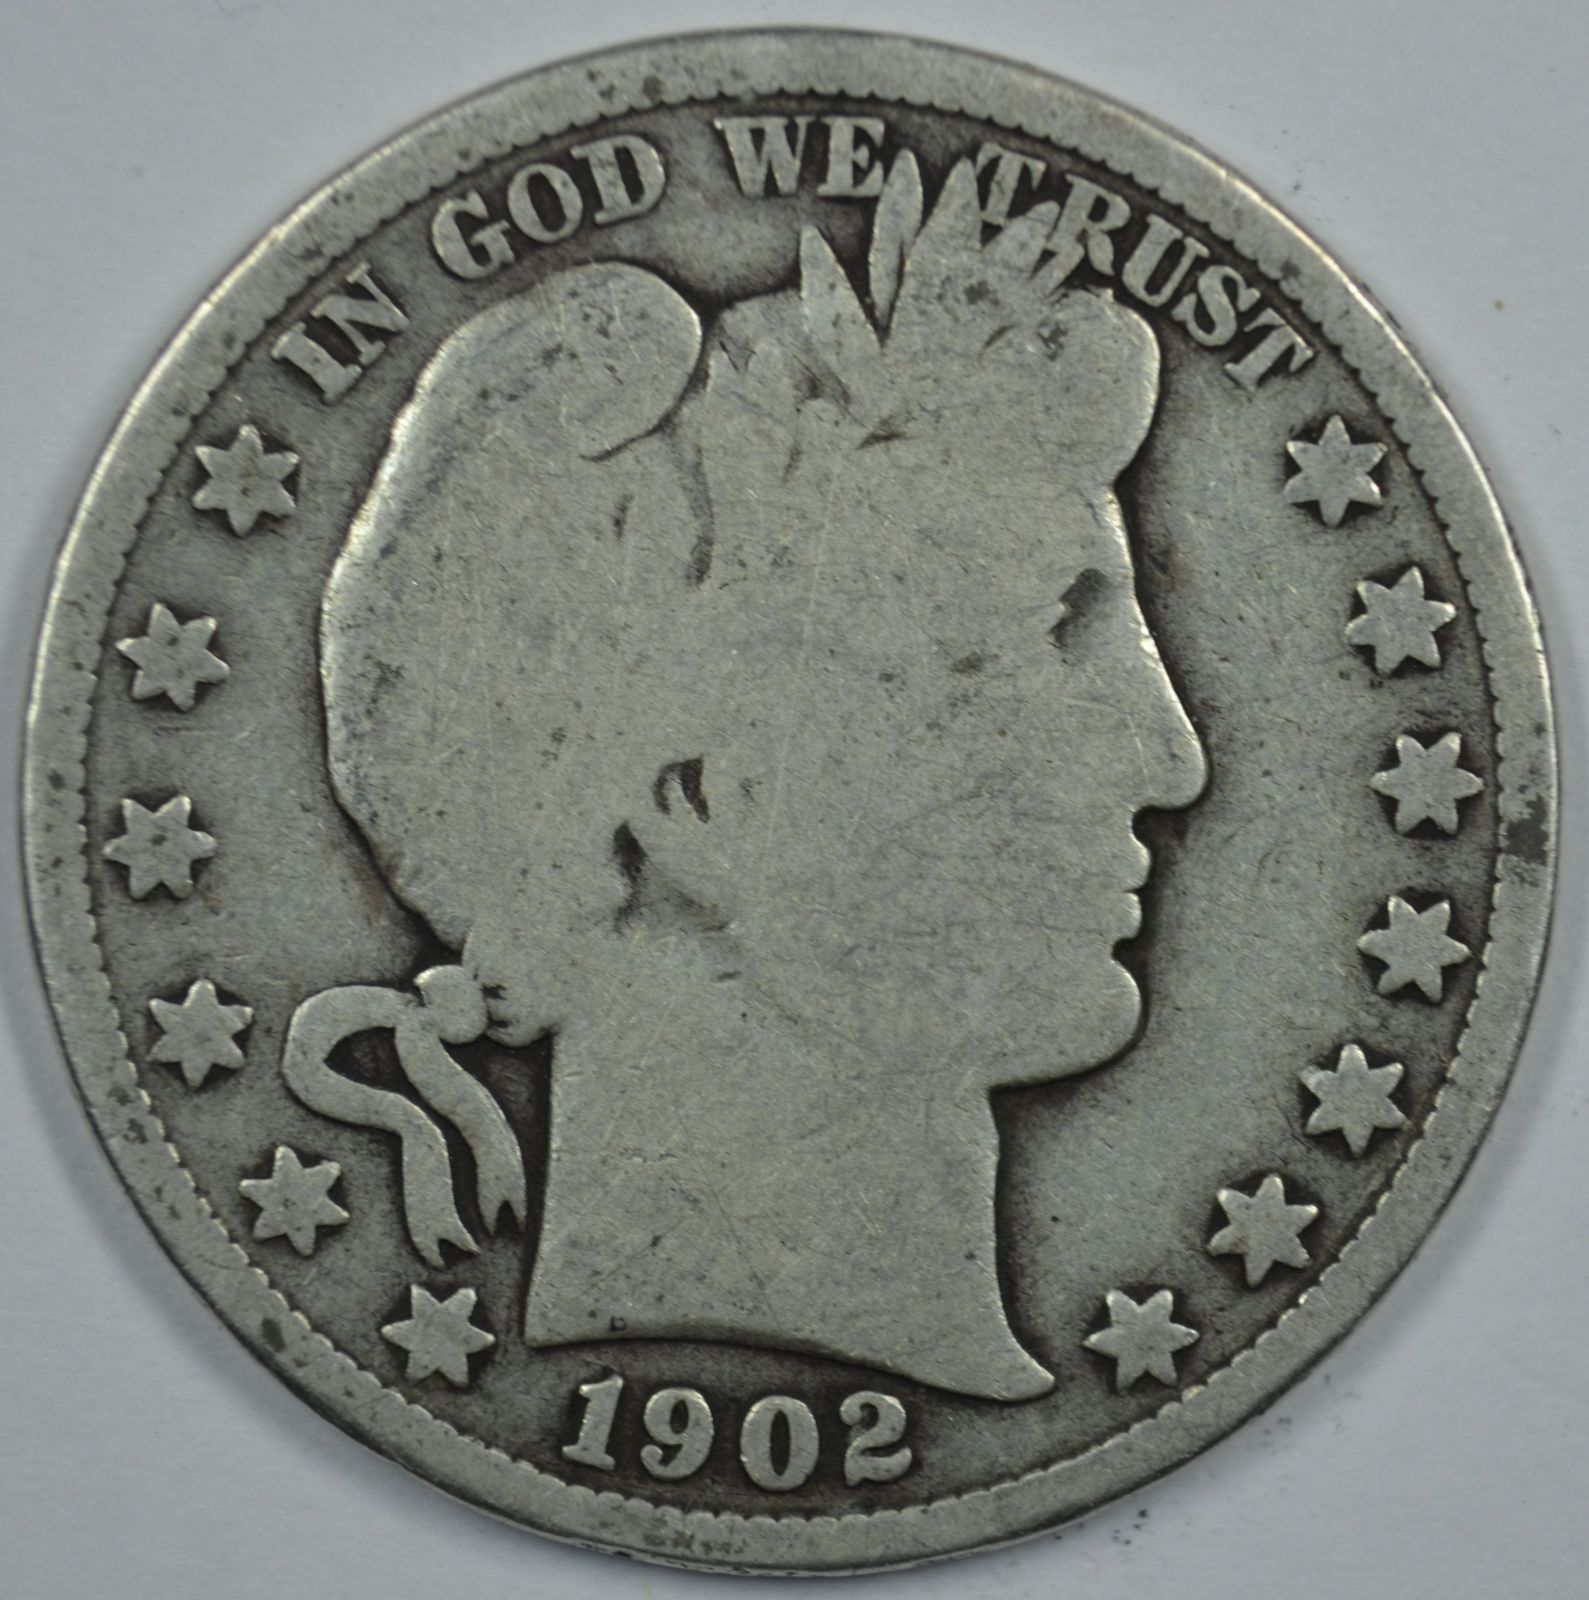 Primary image for 1902 P Barber circulated silver half